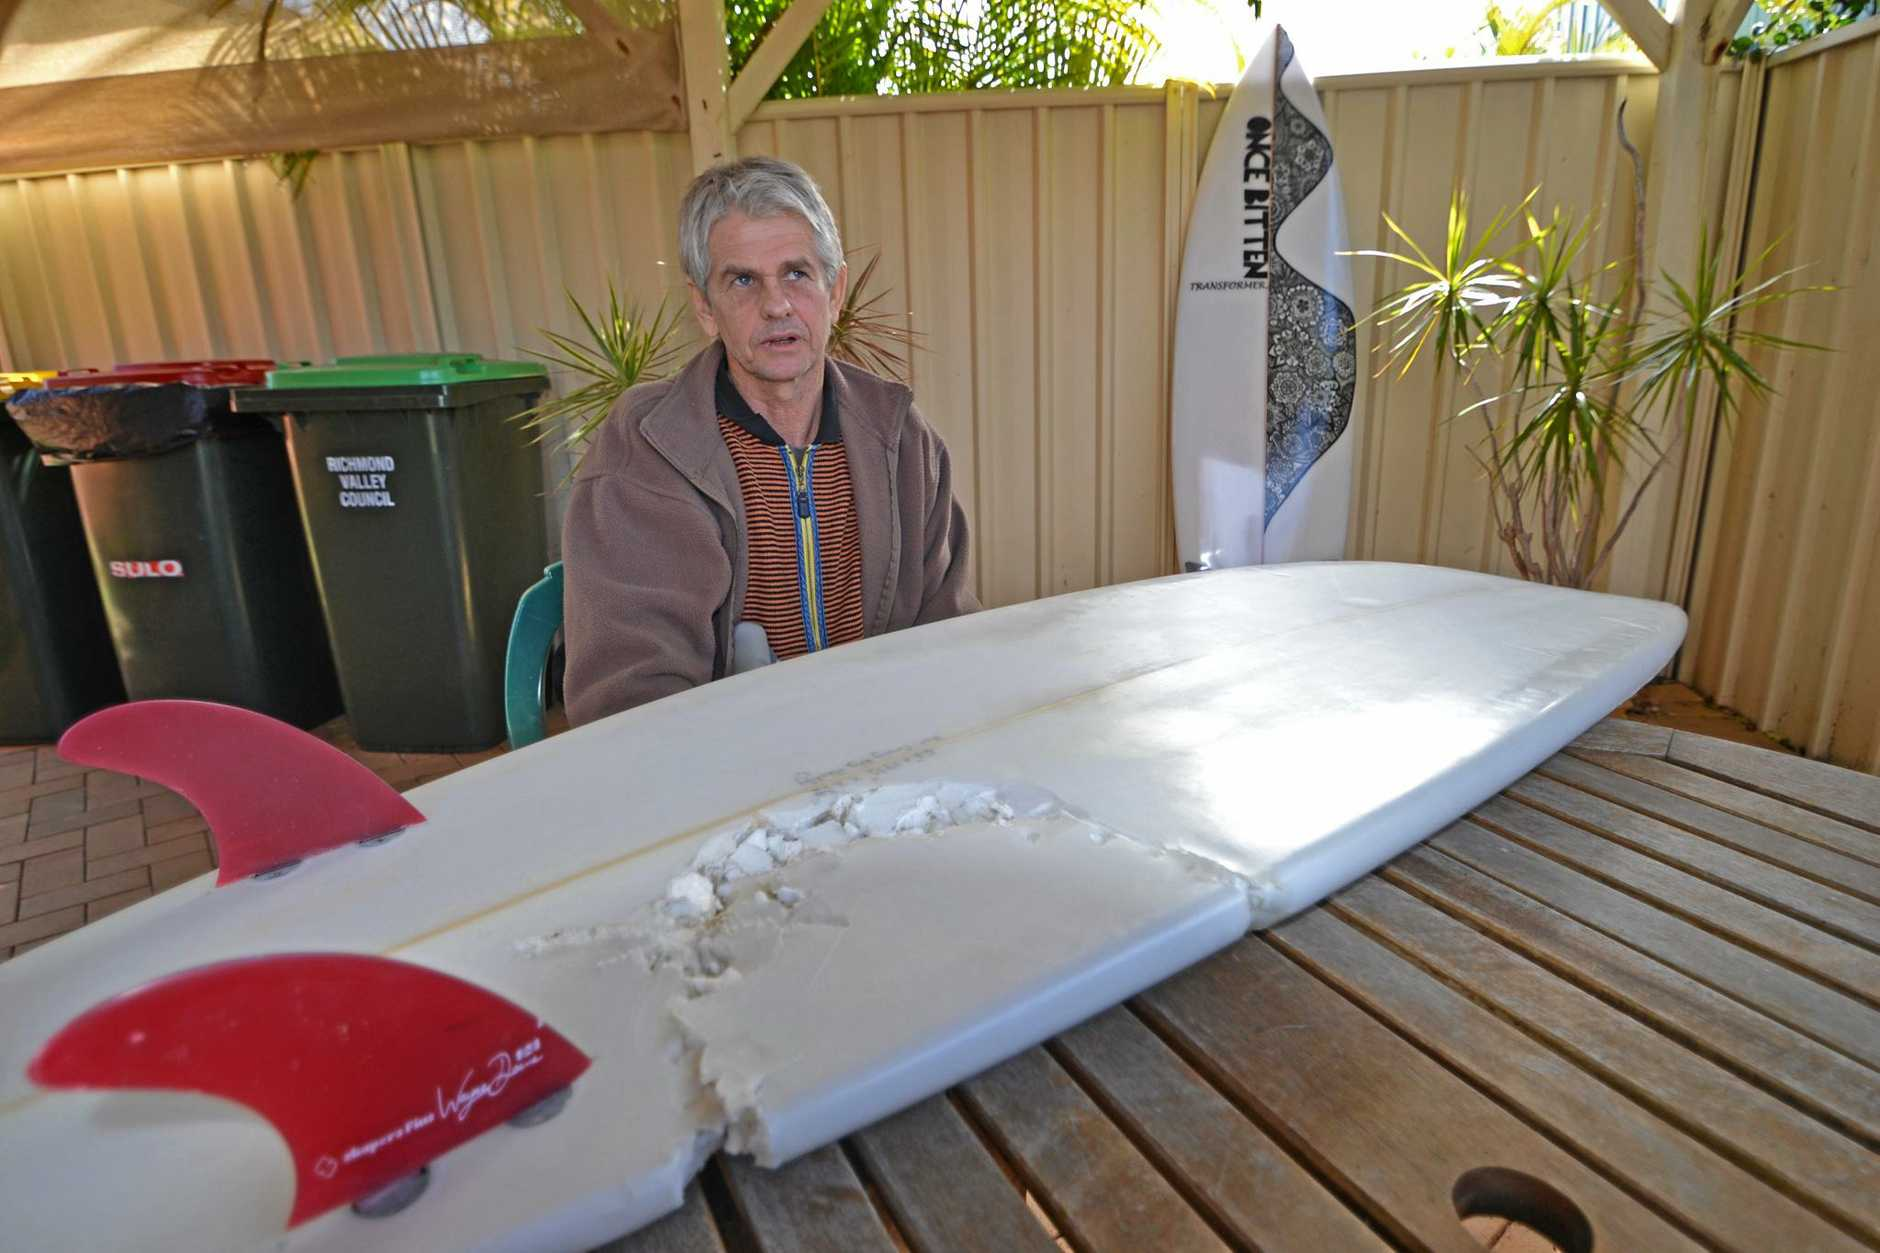 Alan Brown of Ballina is asking the government to provide protective measures before the summer holidays so incidences like Craig Ison's shark attack at Evans Head don't happen again.